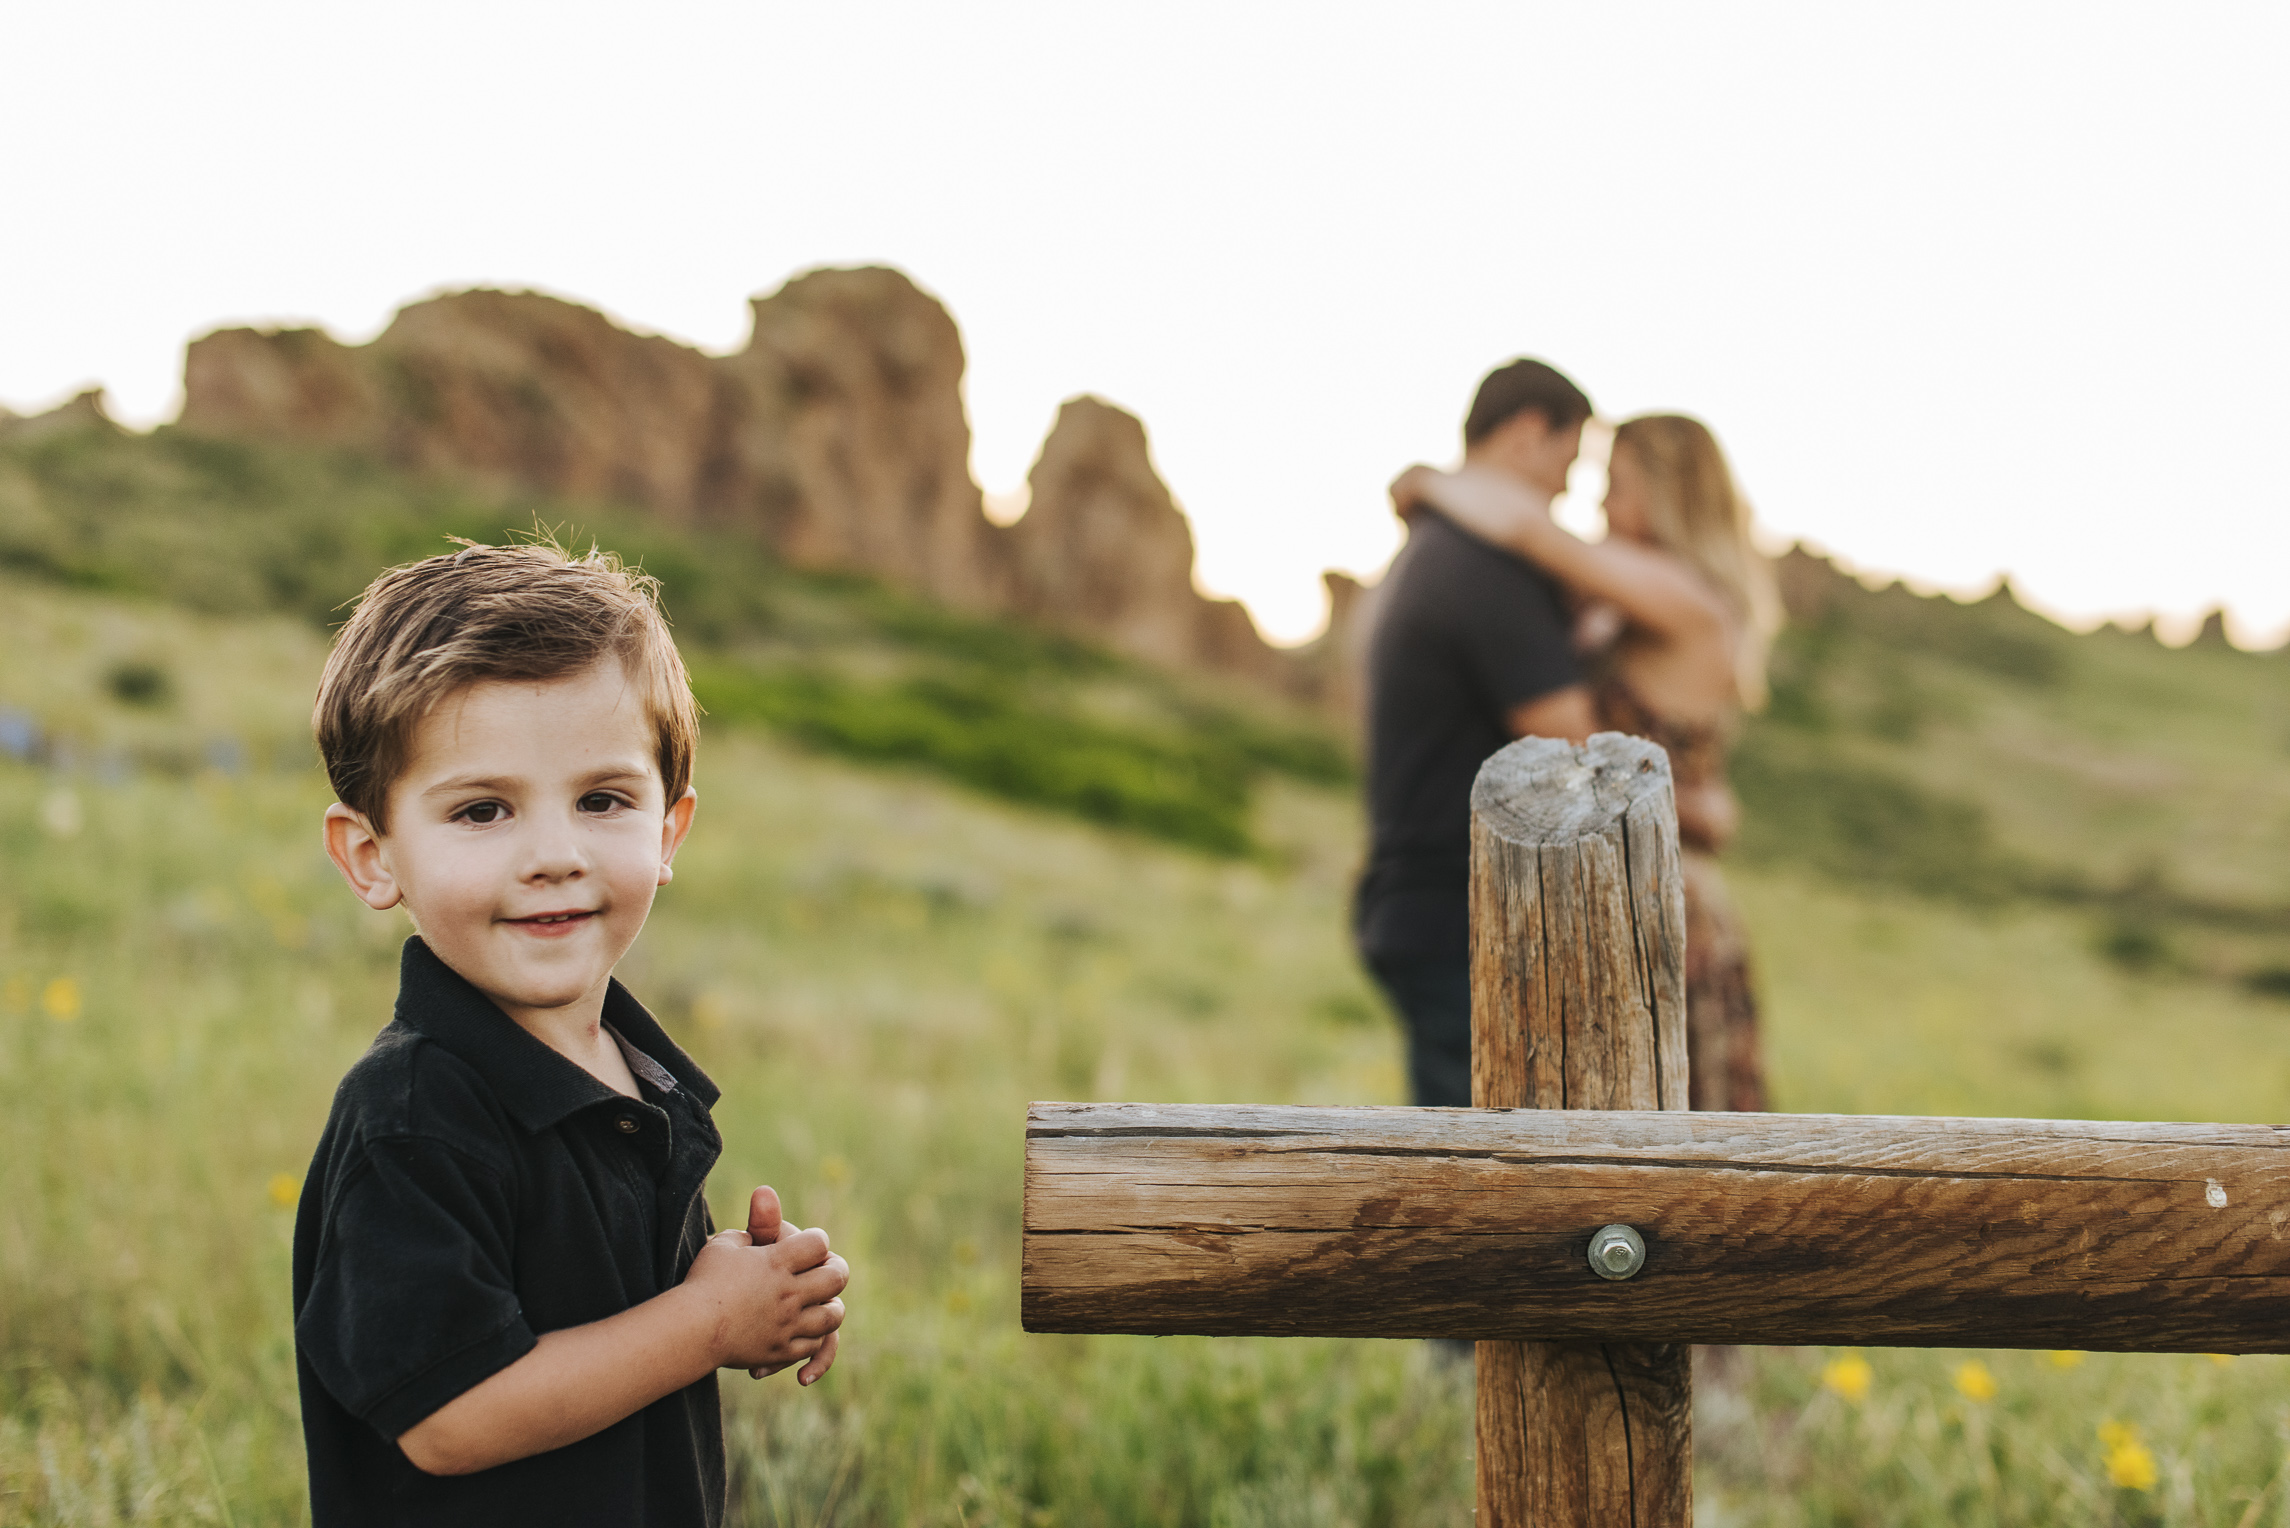 060716 webJAKE & MCKENNA FAMILY PHOTOS - COLORADO PHOTOGRAPHER - DEBI RAE PHOTOGRAPHY-5601.jpg